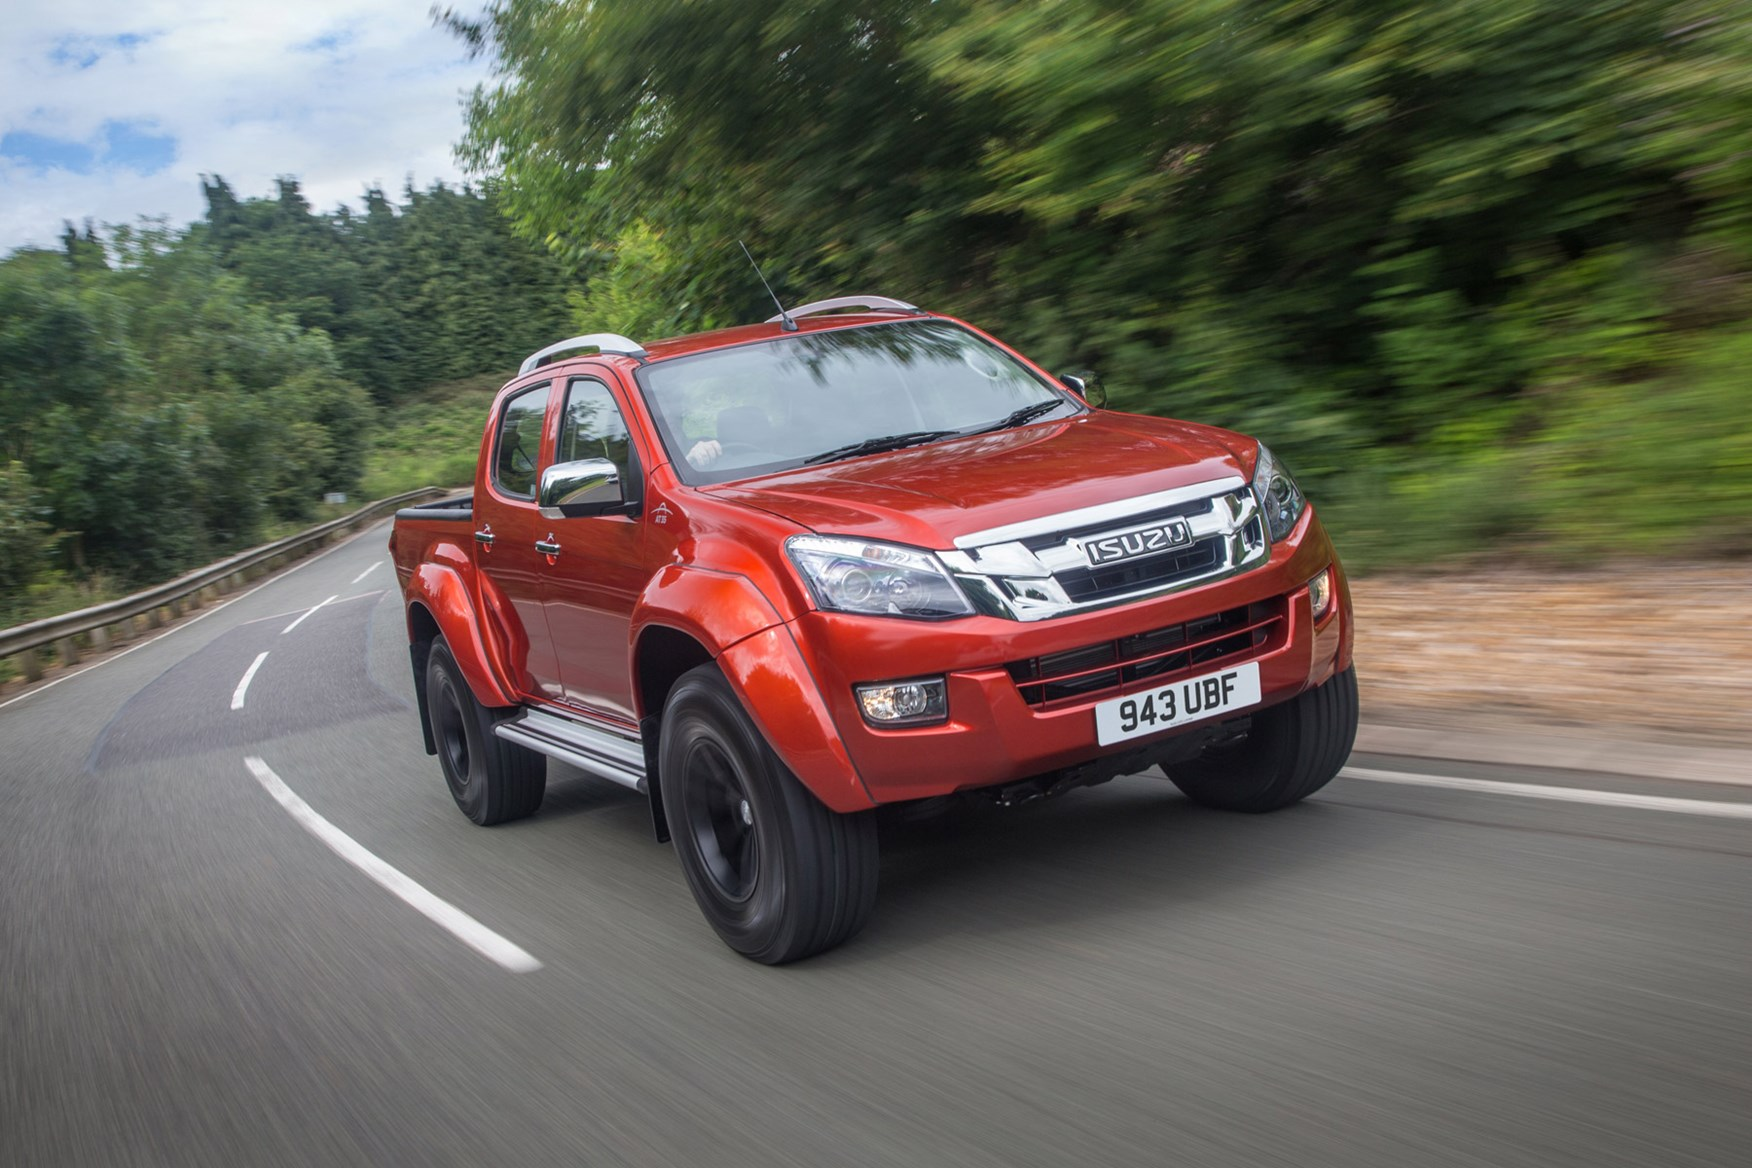 Isuzu D-Max full review on Parkers Vans - AT35 variant exterior